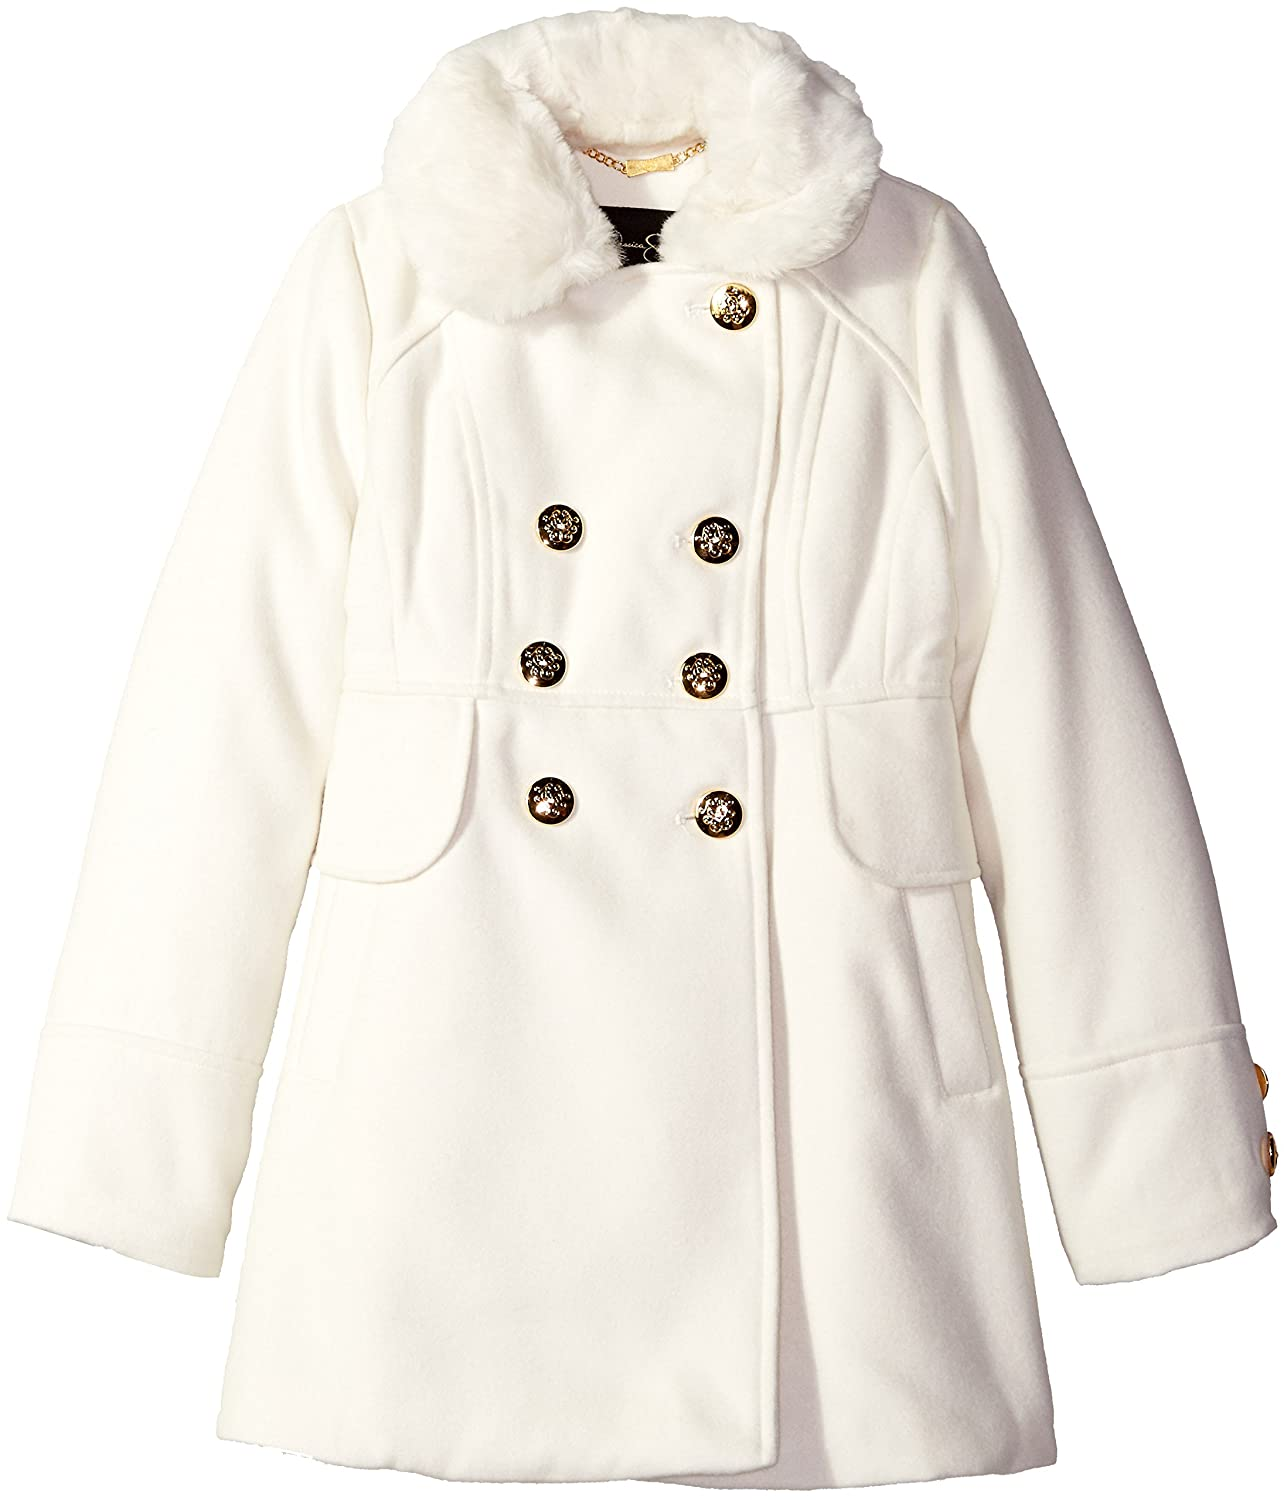 Jessica Simpson Big Girls' Double Breasted Church Coat with Faux Fur Collar 216620